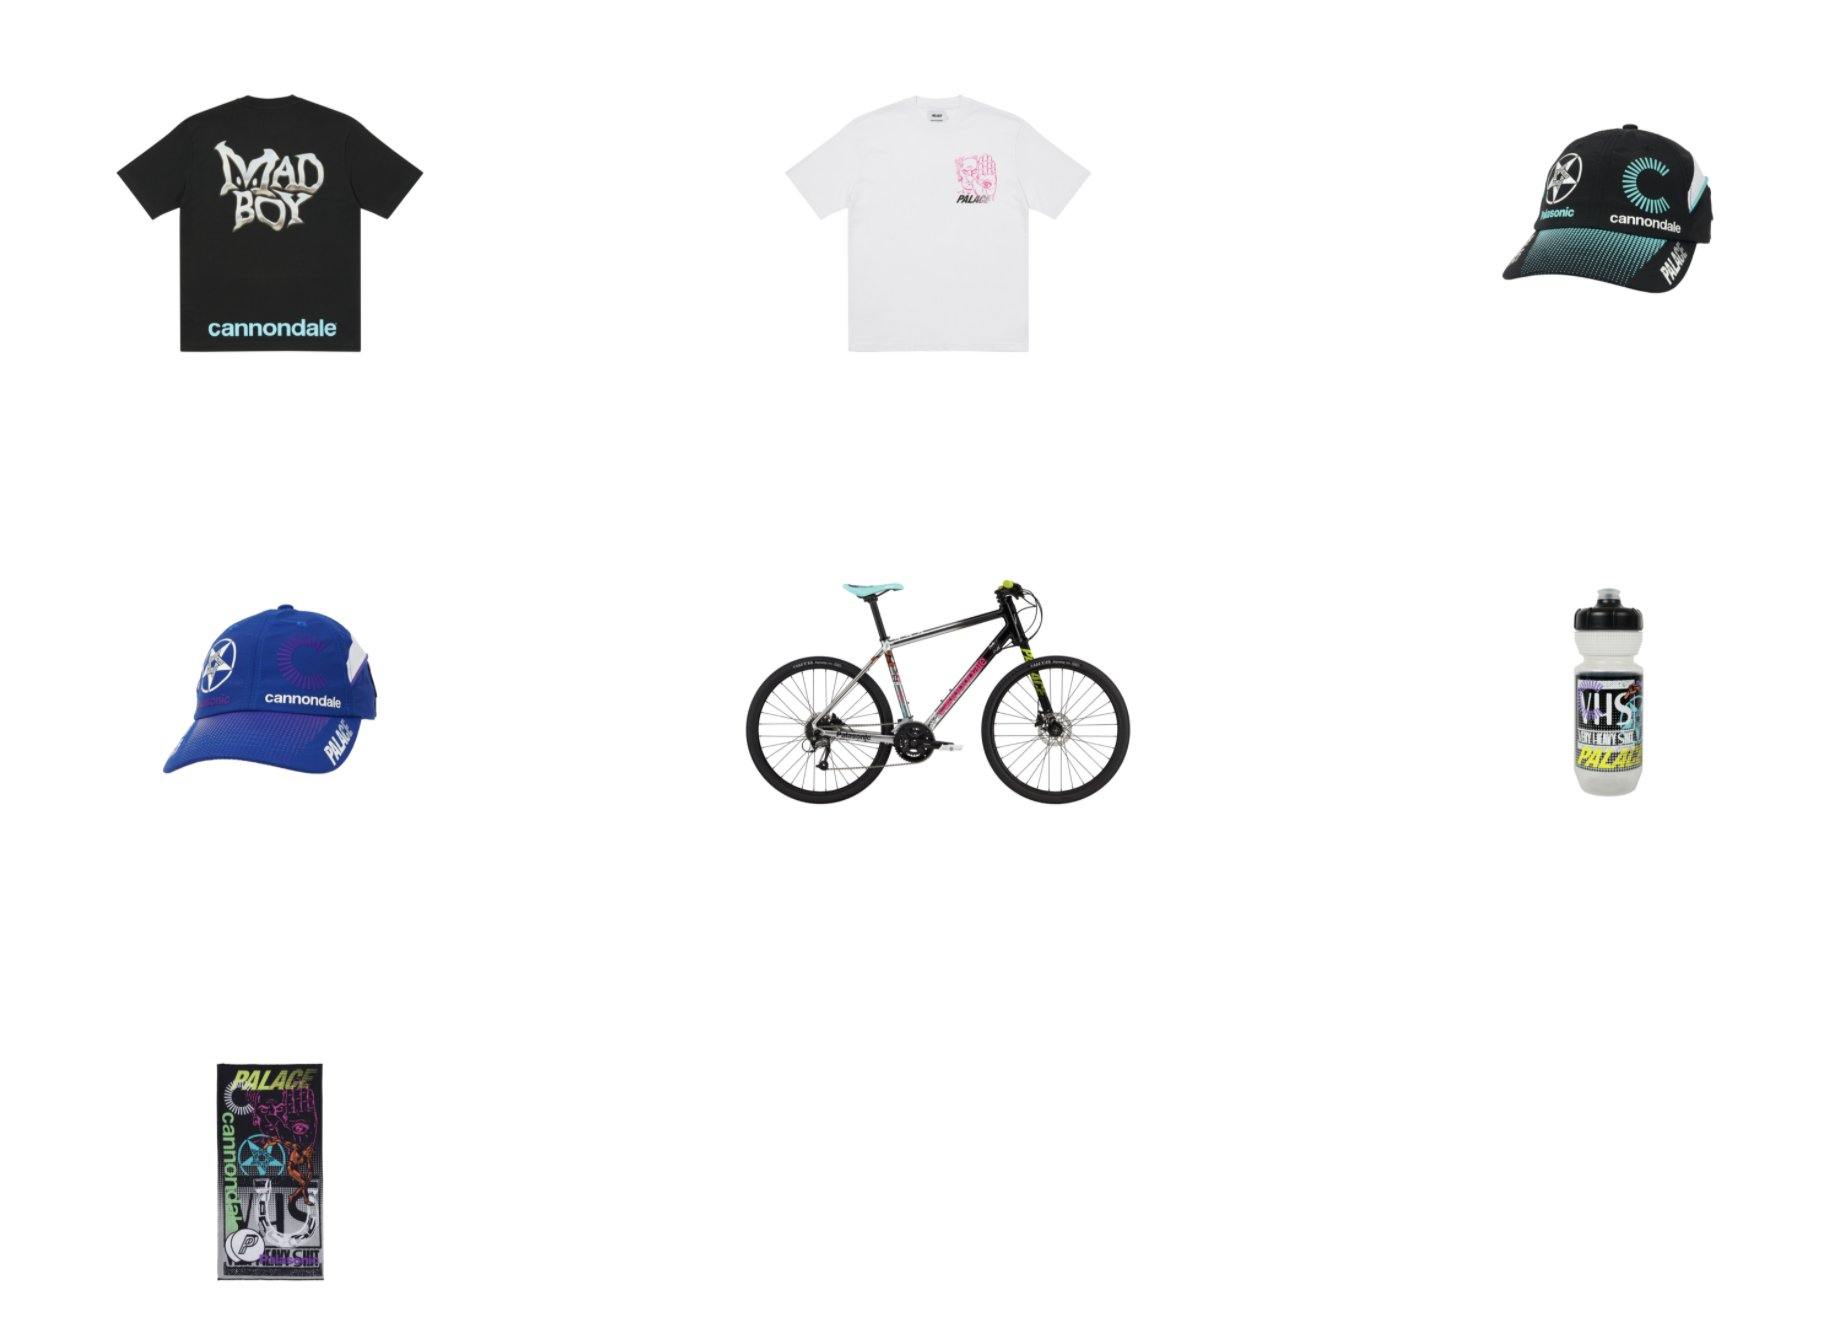 palace-cannondale-collaboration-2021-autumn-release-20210904-week5